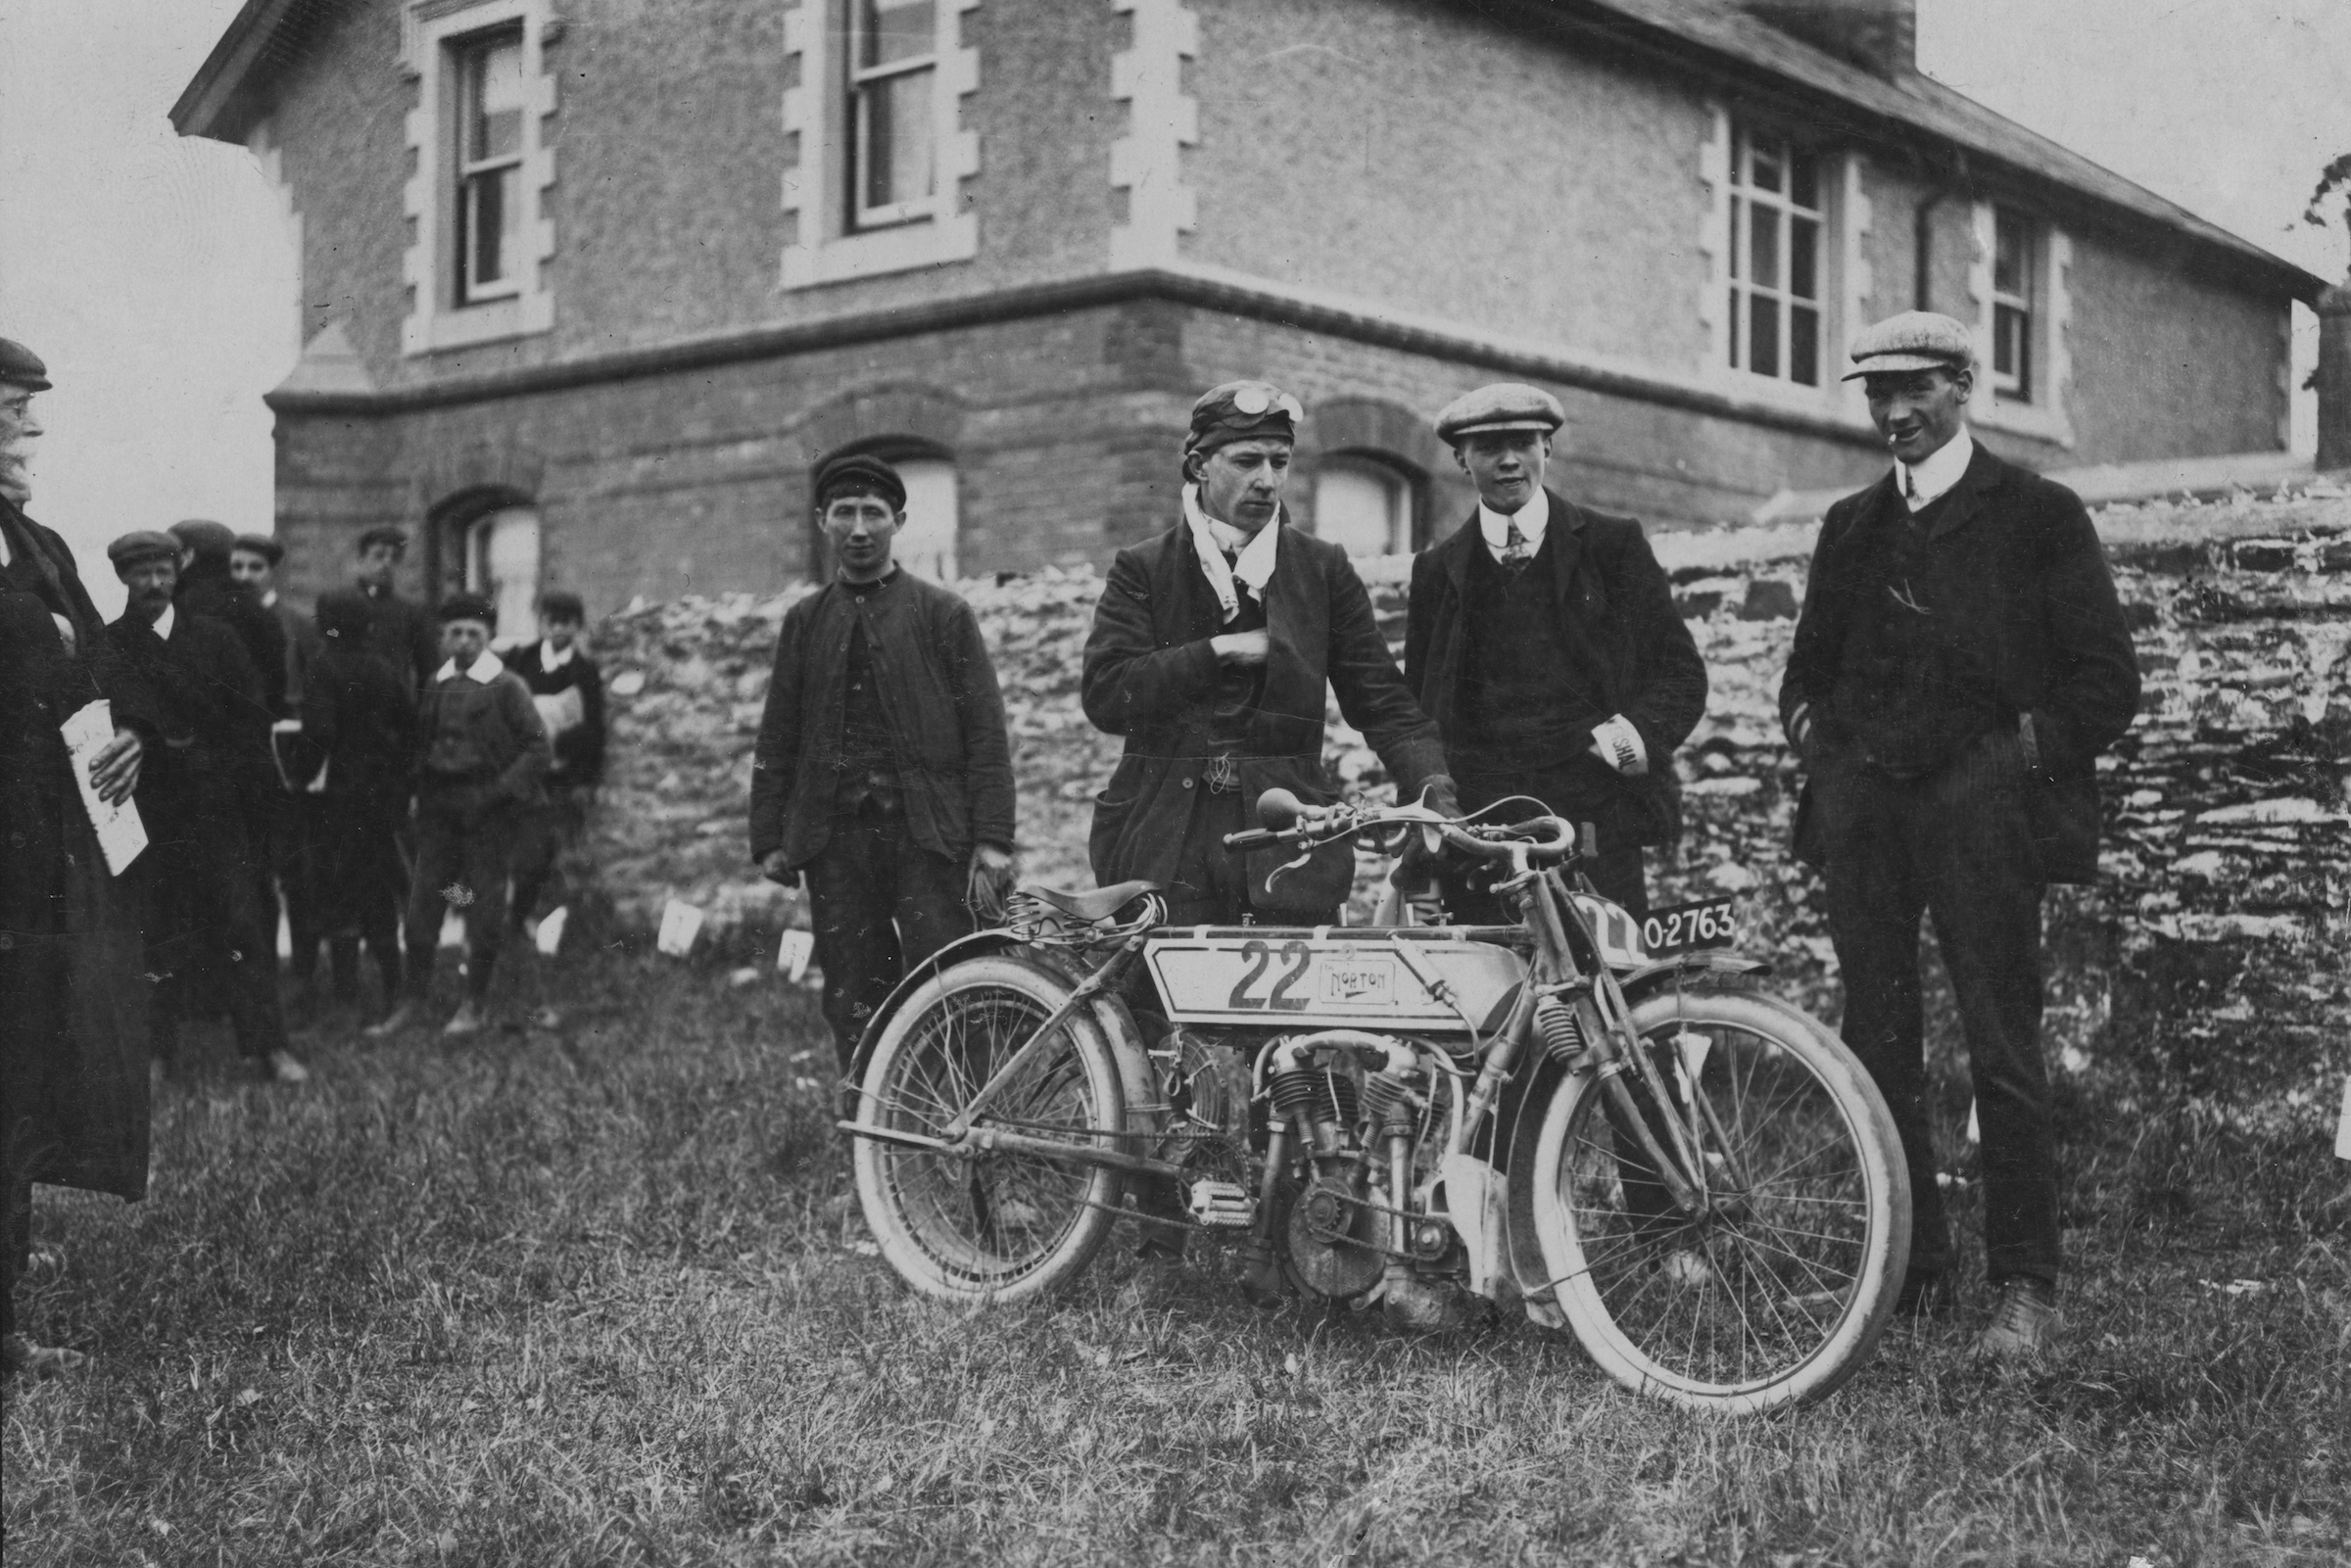 Freeze Frame: The first Isle of Man TT race